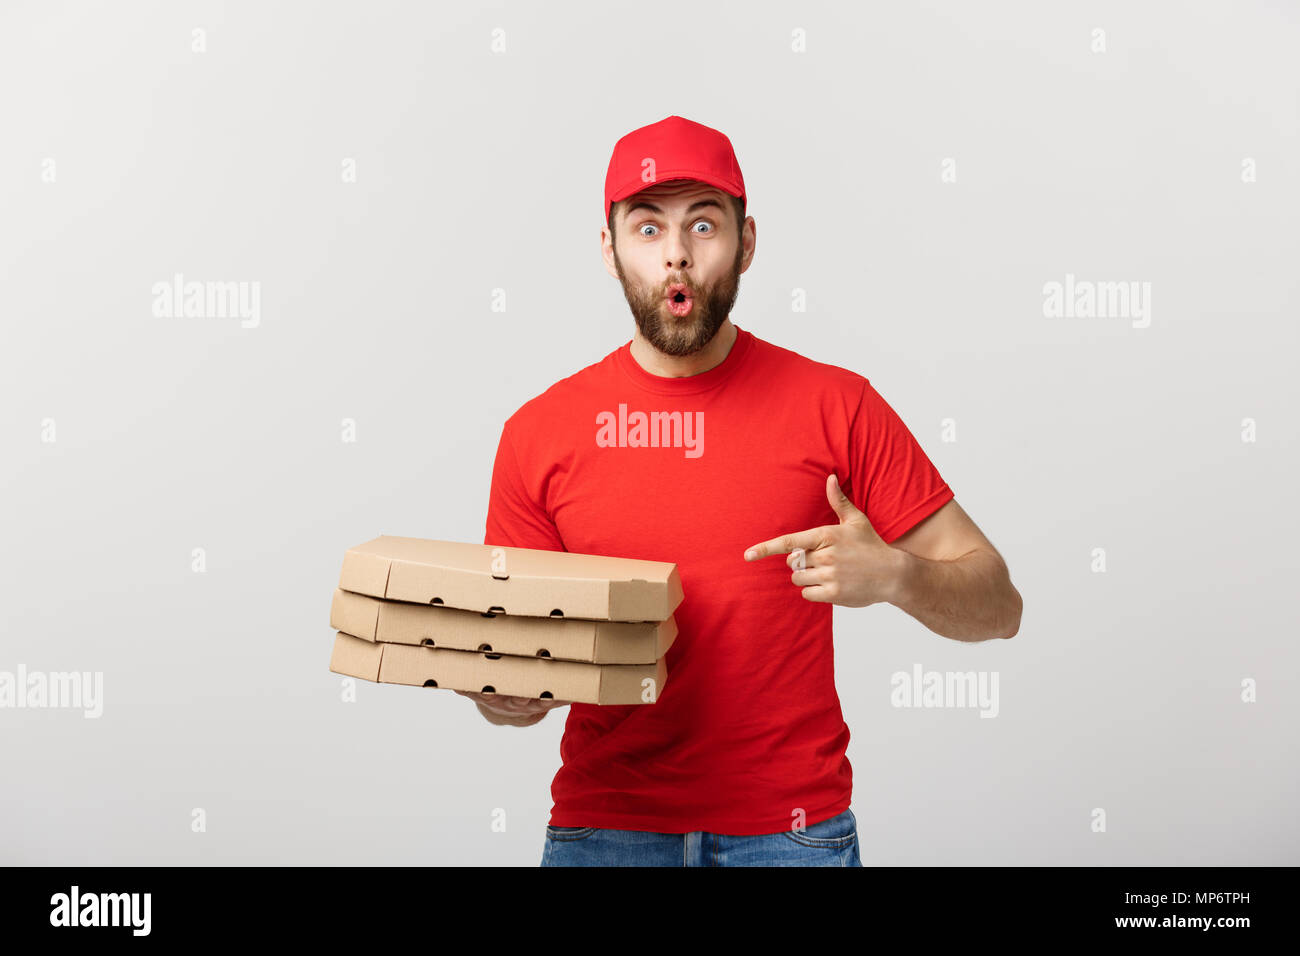 Delivery Concept: Portrait of Pizza delivery man presenting something in box. Isolated white background. - Stock Image